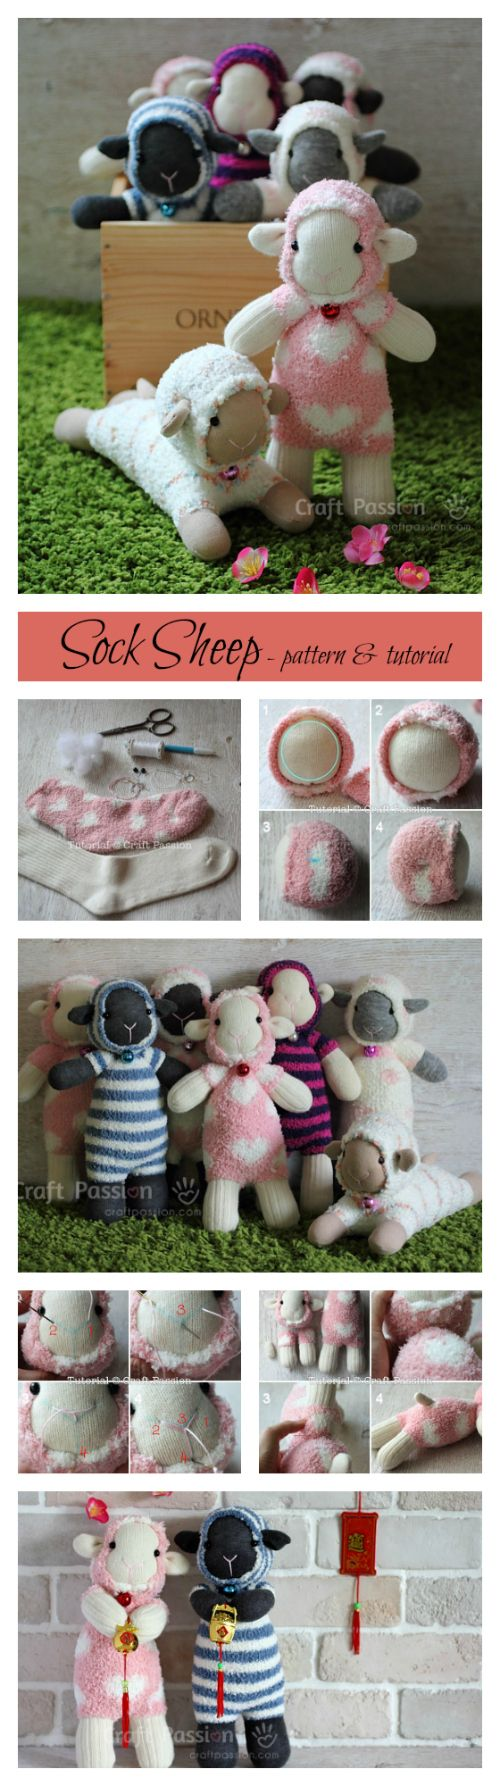 Free pattern and tutorial on how to sew sock sheep with 2 single socks. Use a microfiber sock to resemble the fluffy fur of the sheep.: